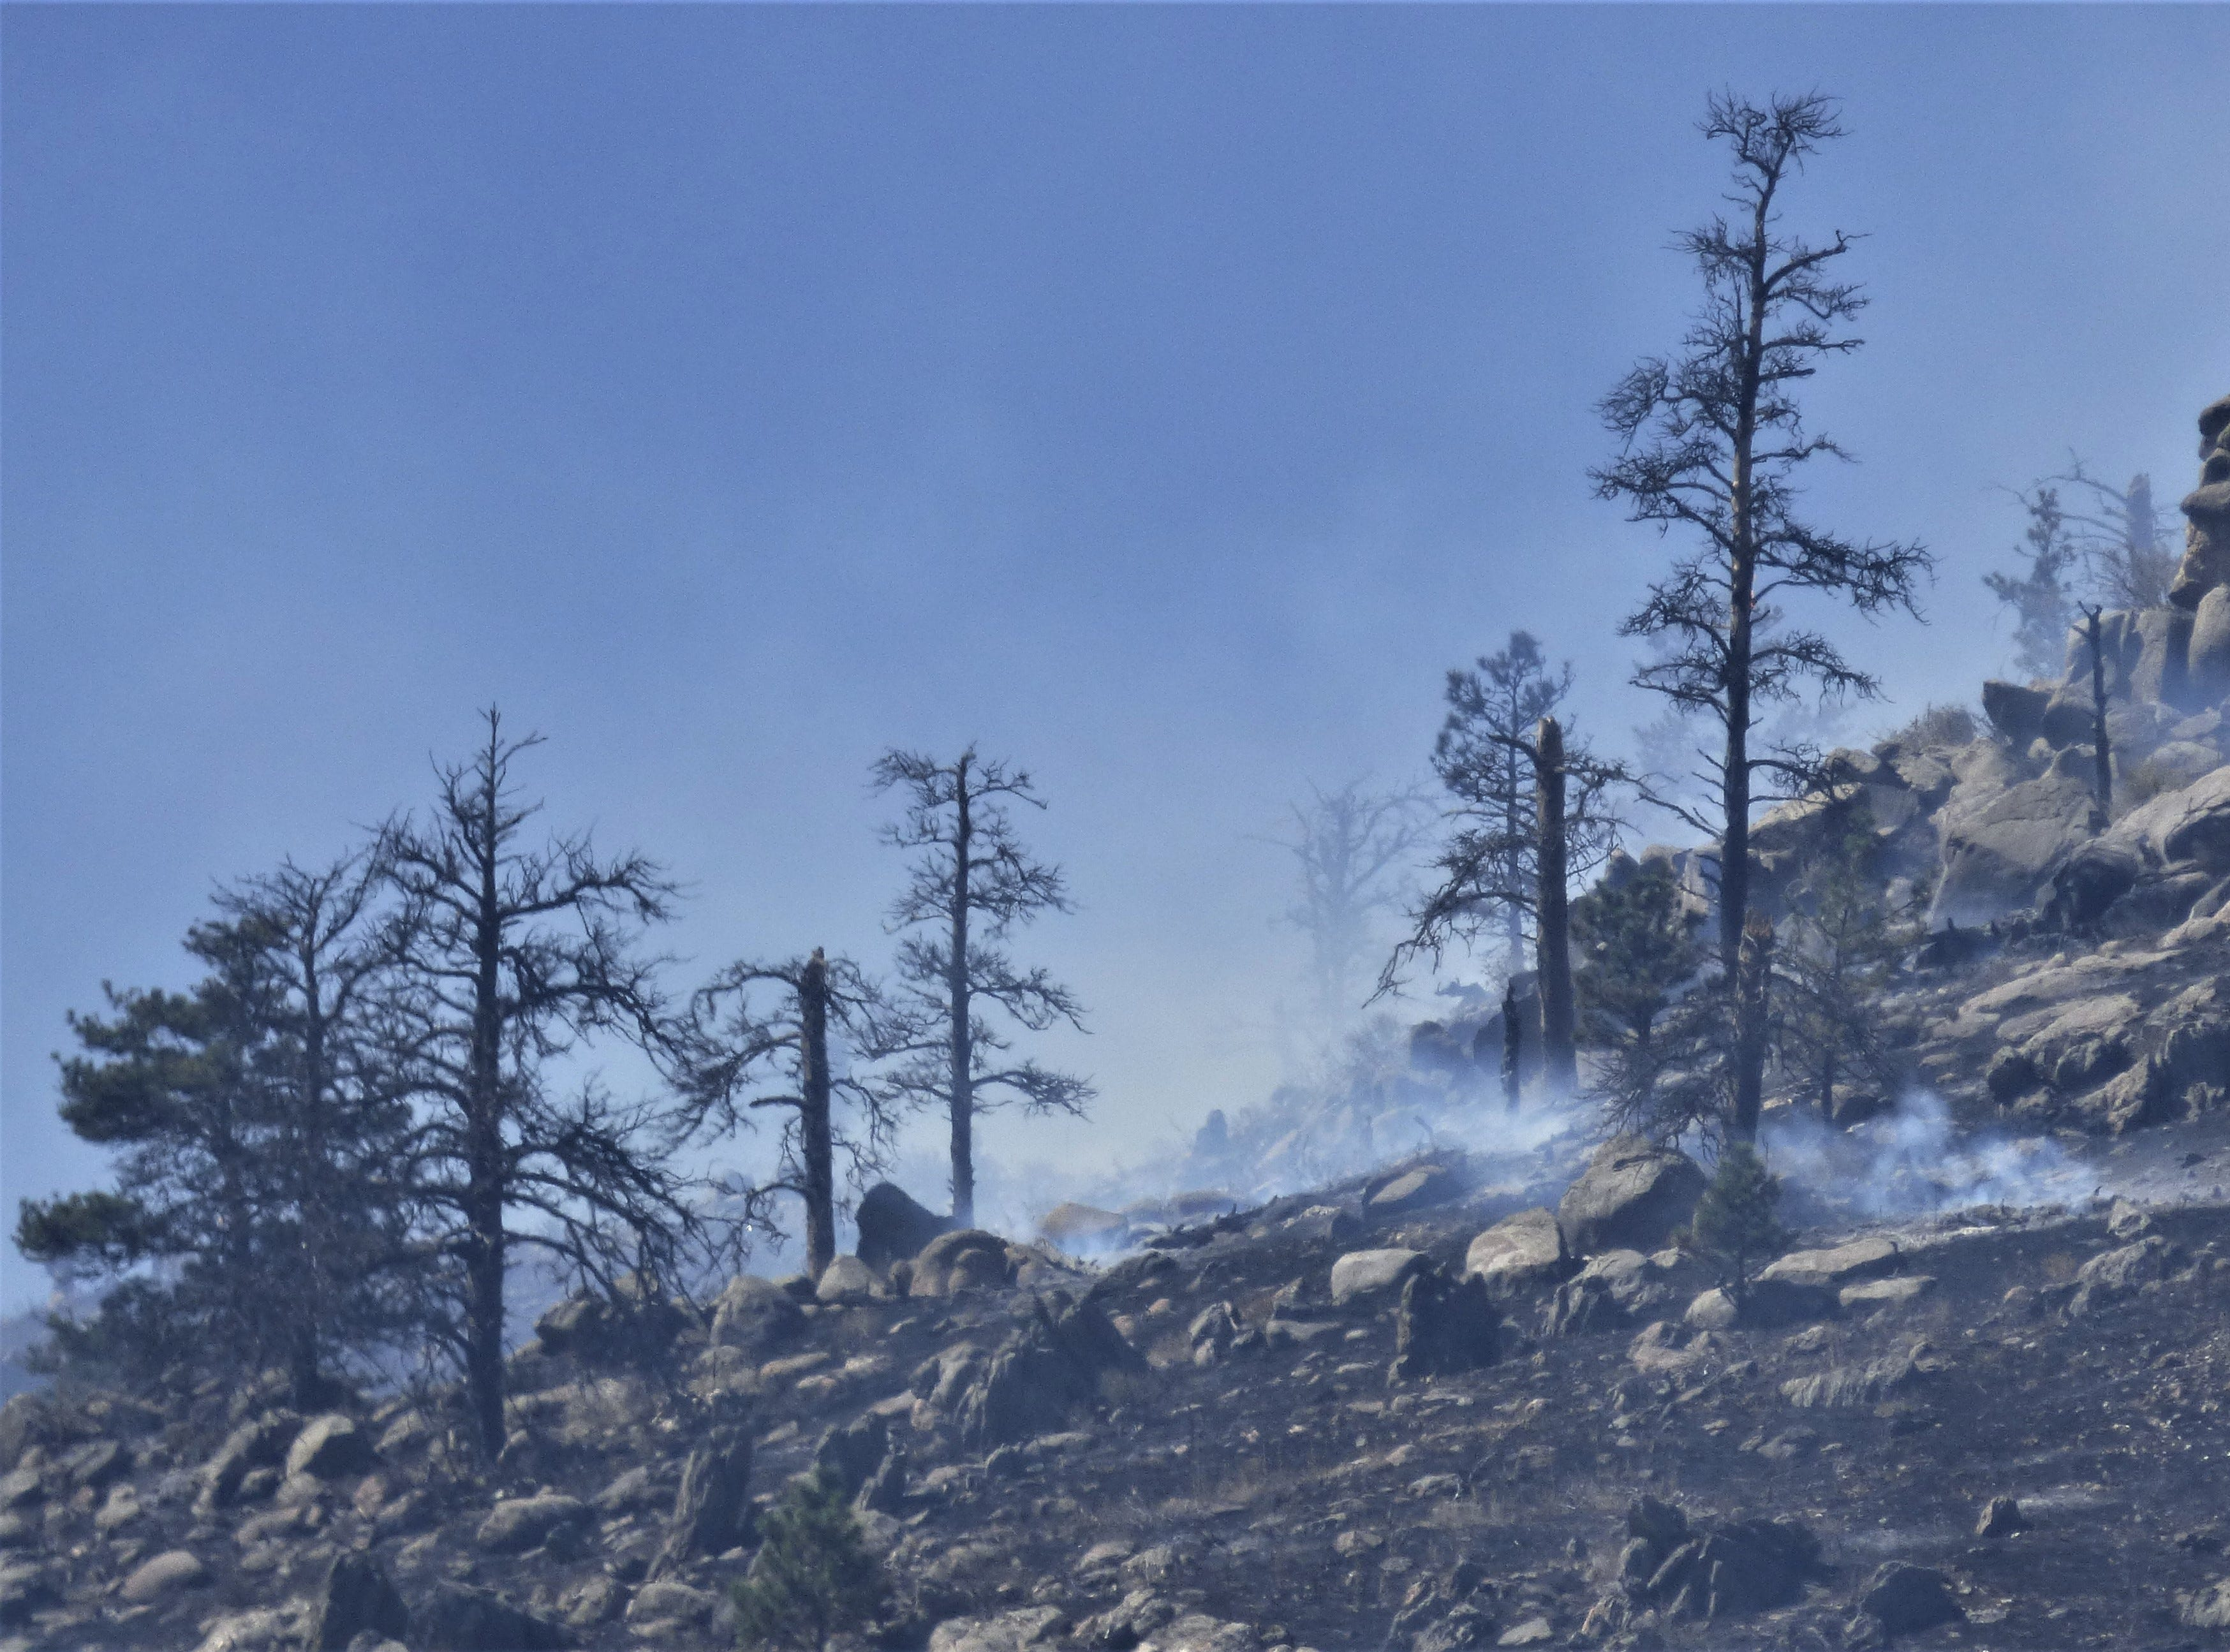 Reader Kristen Peterson, who lives near the Seaman Fire, provided this photo of the fire.